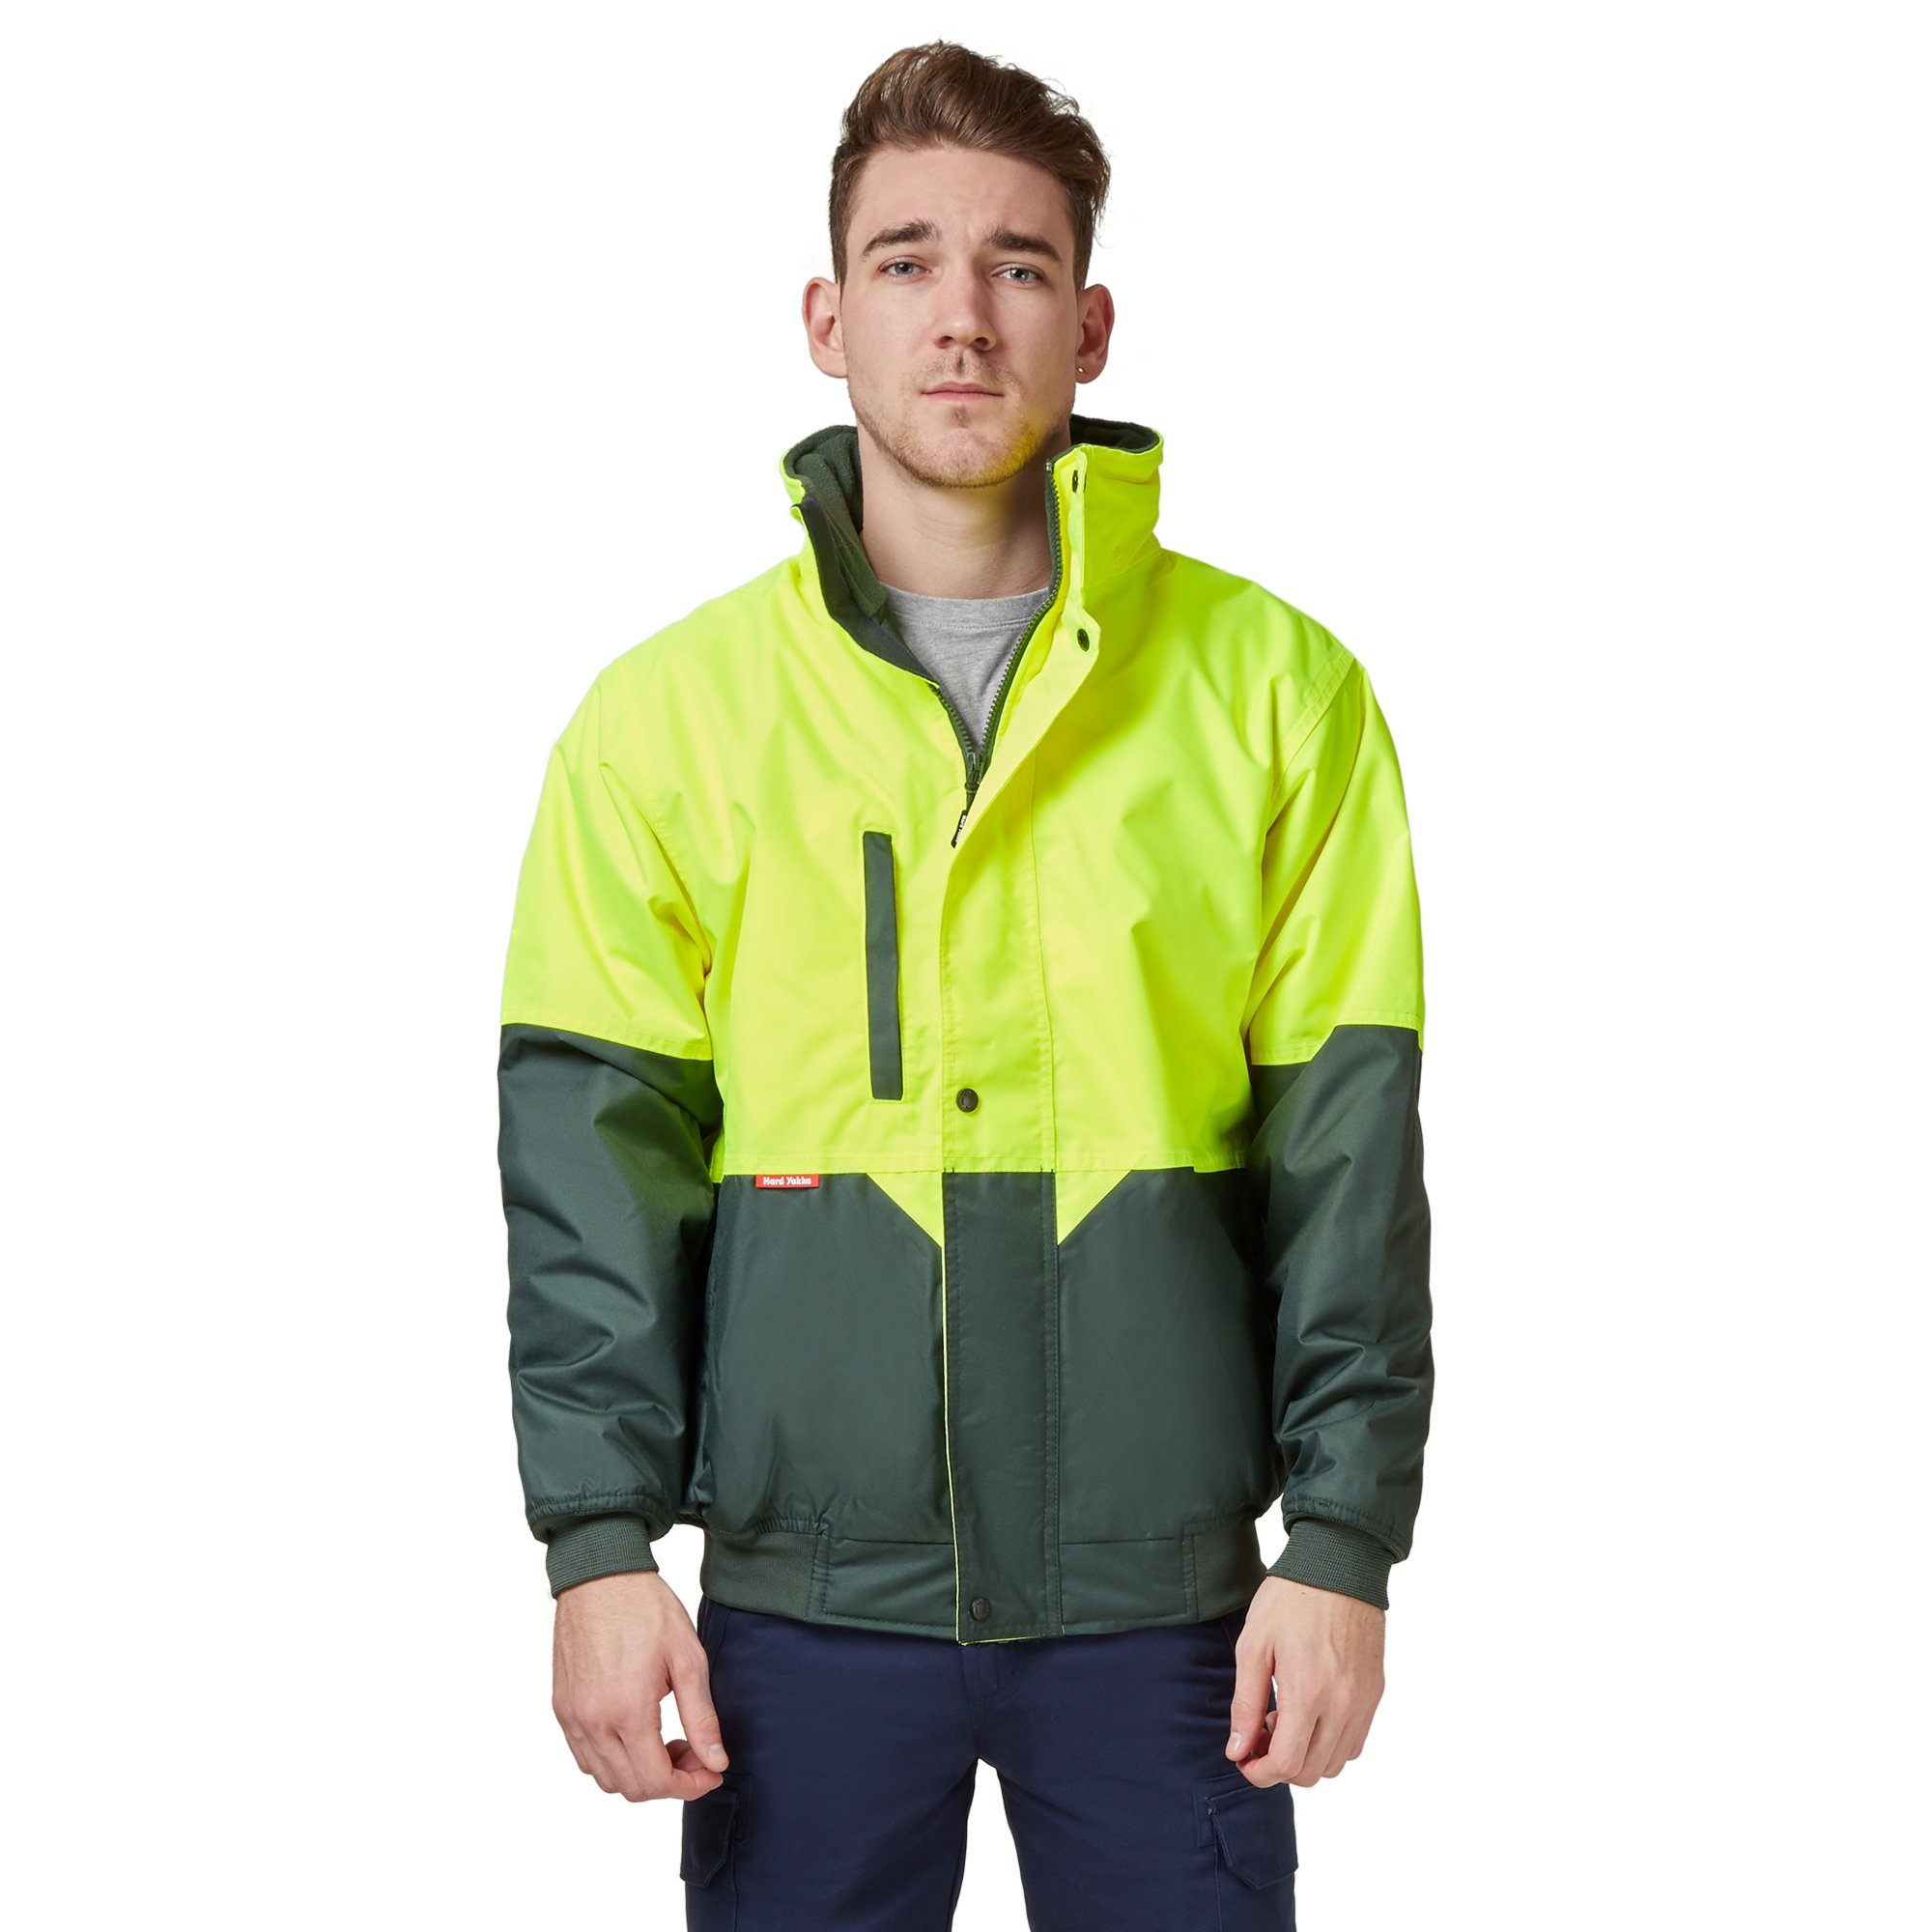 Hard Yakka Two Tone Quilted Pilot Jacket - Yellow/Green Workwear Isbister & Co Wholesale